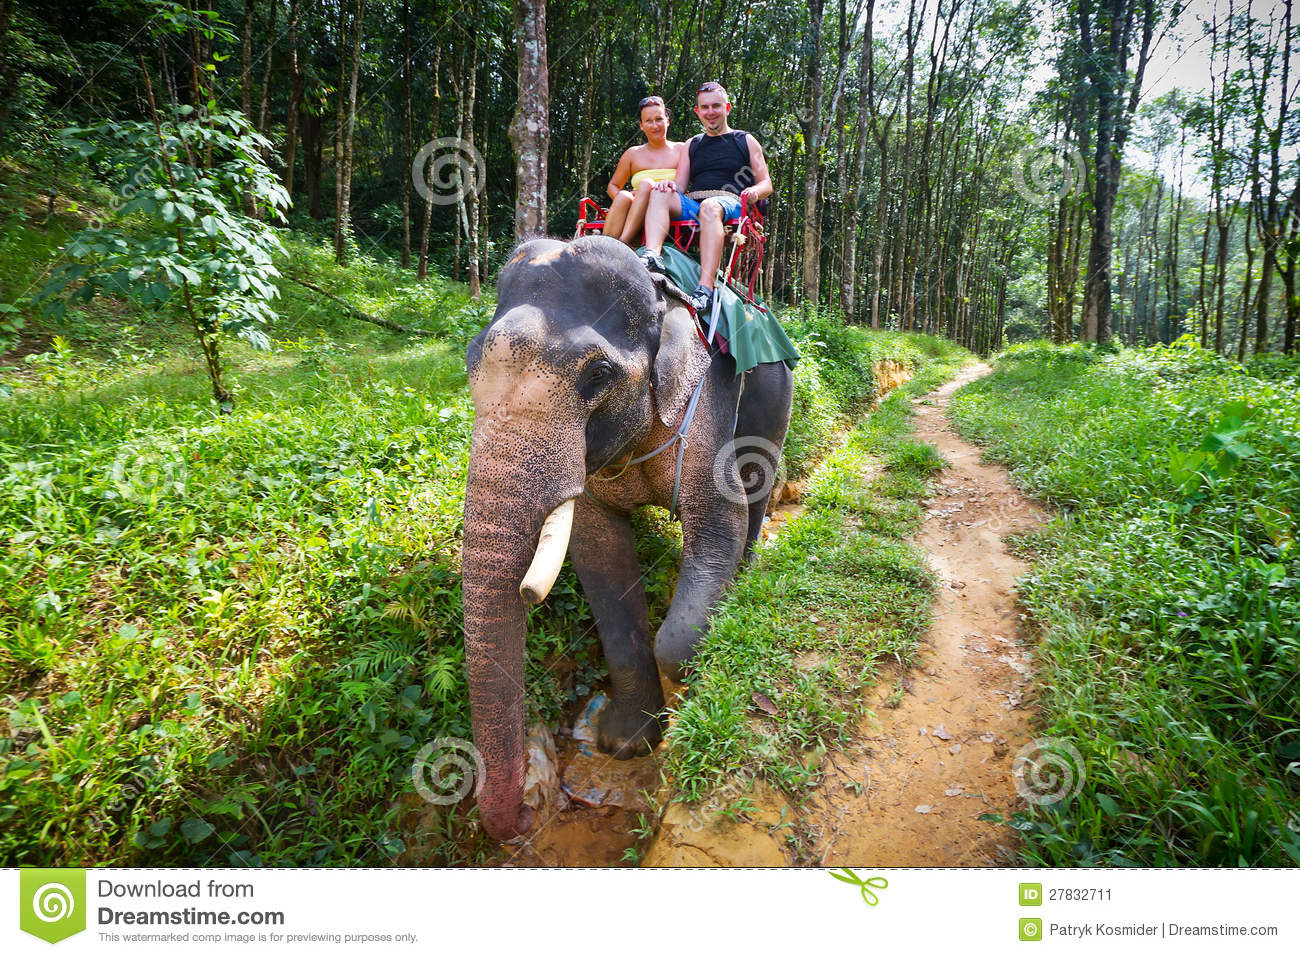 Elephant trekking in Khao Sok National Park